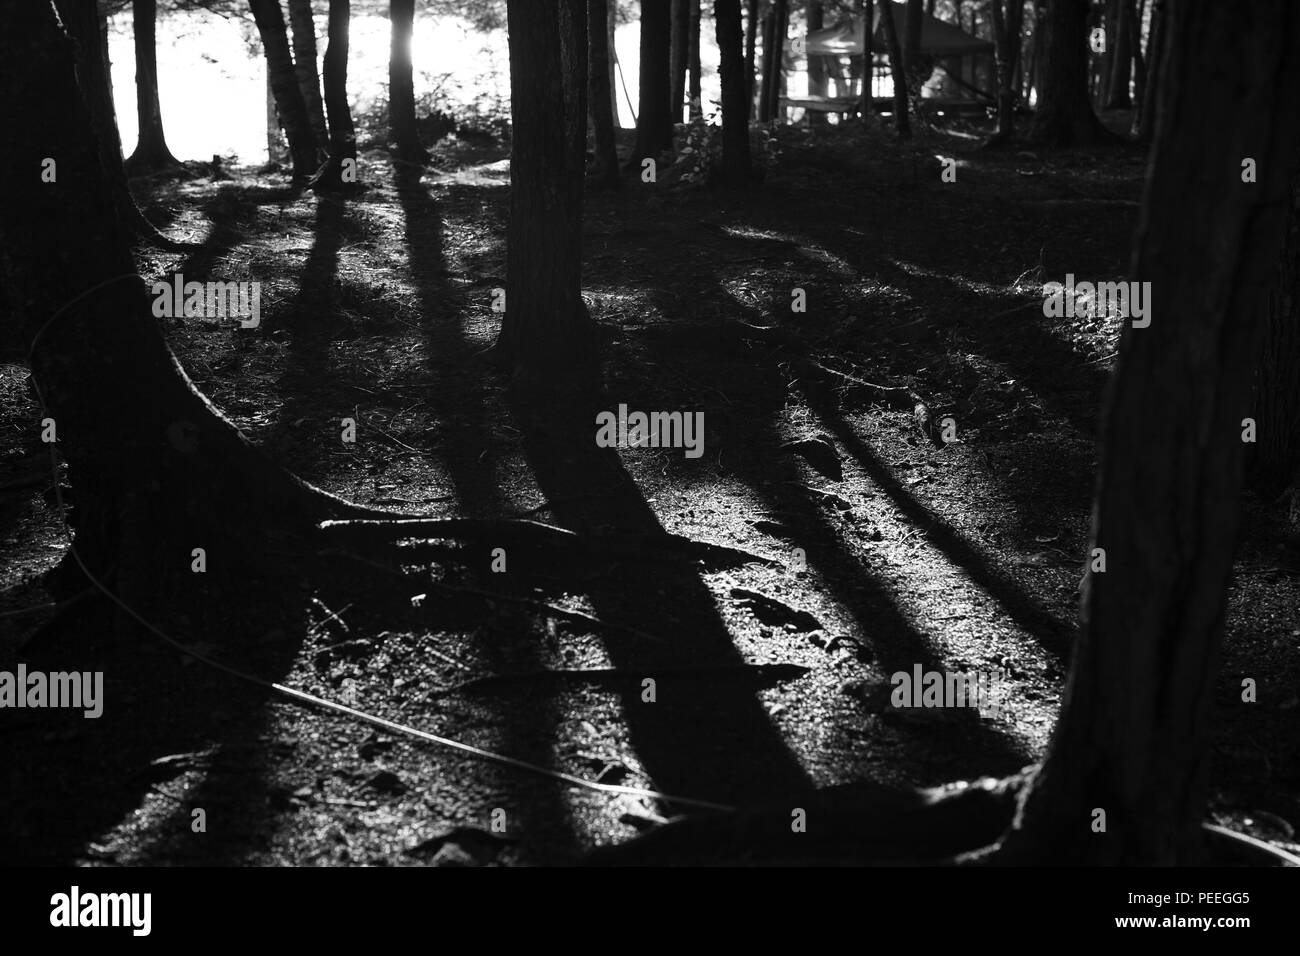 Black and white image long shadows of trees - Stock Image